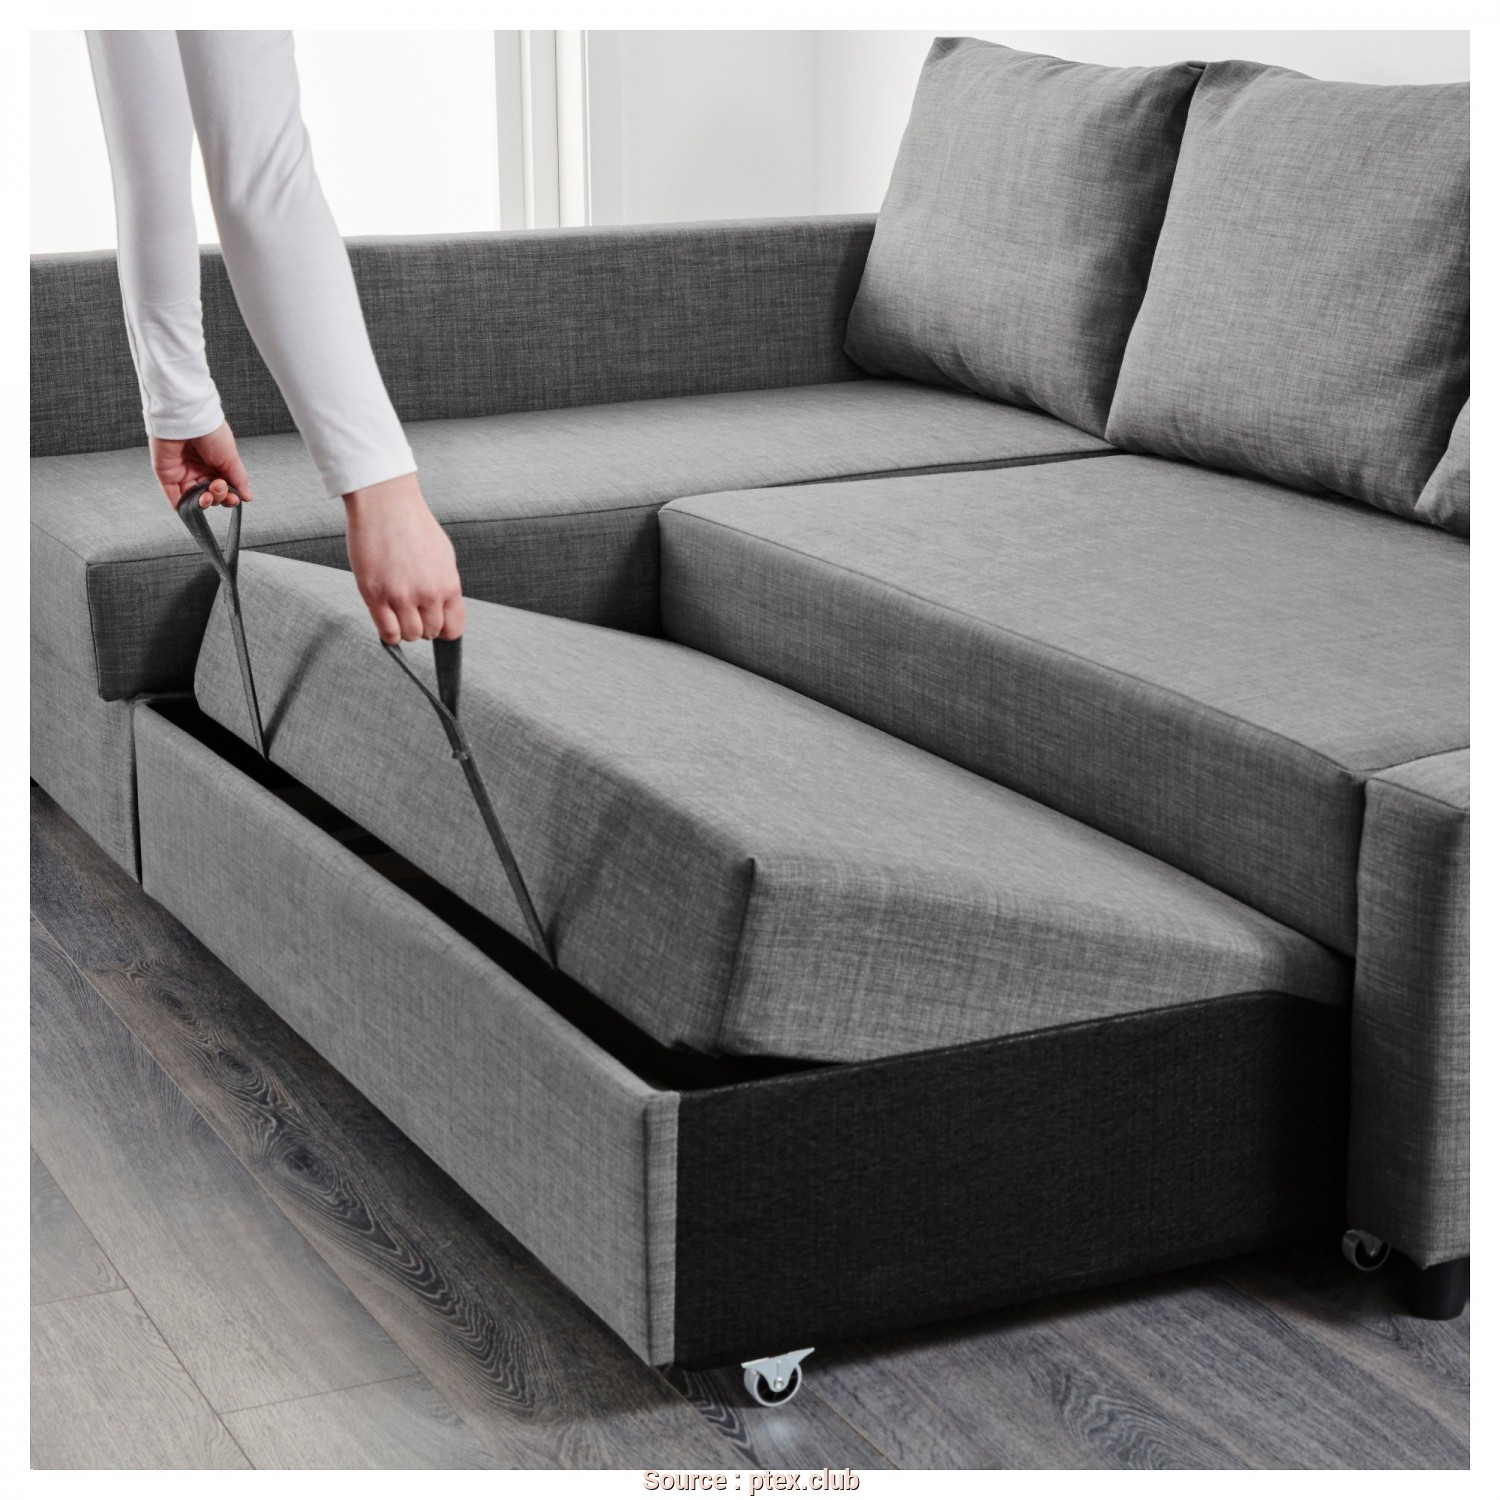 Ikea Asarum Bed, Magnifico WRG-8765] Nice Balkarp Sofa, On Interior Decor Home Ideas With